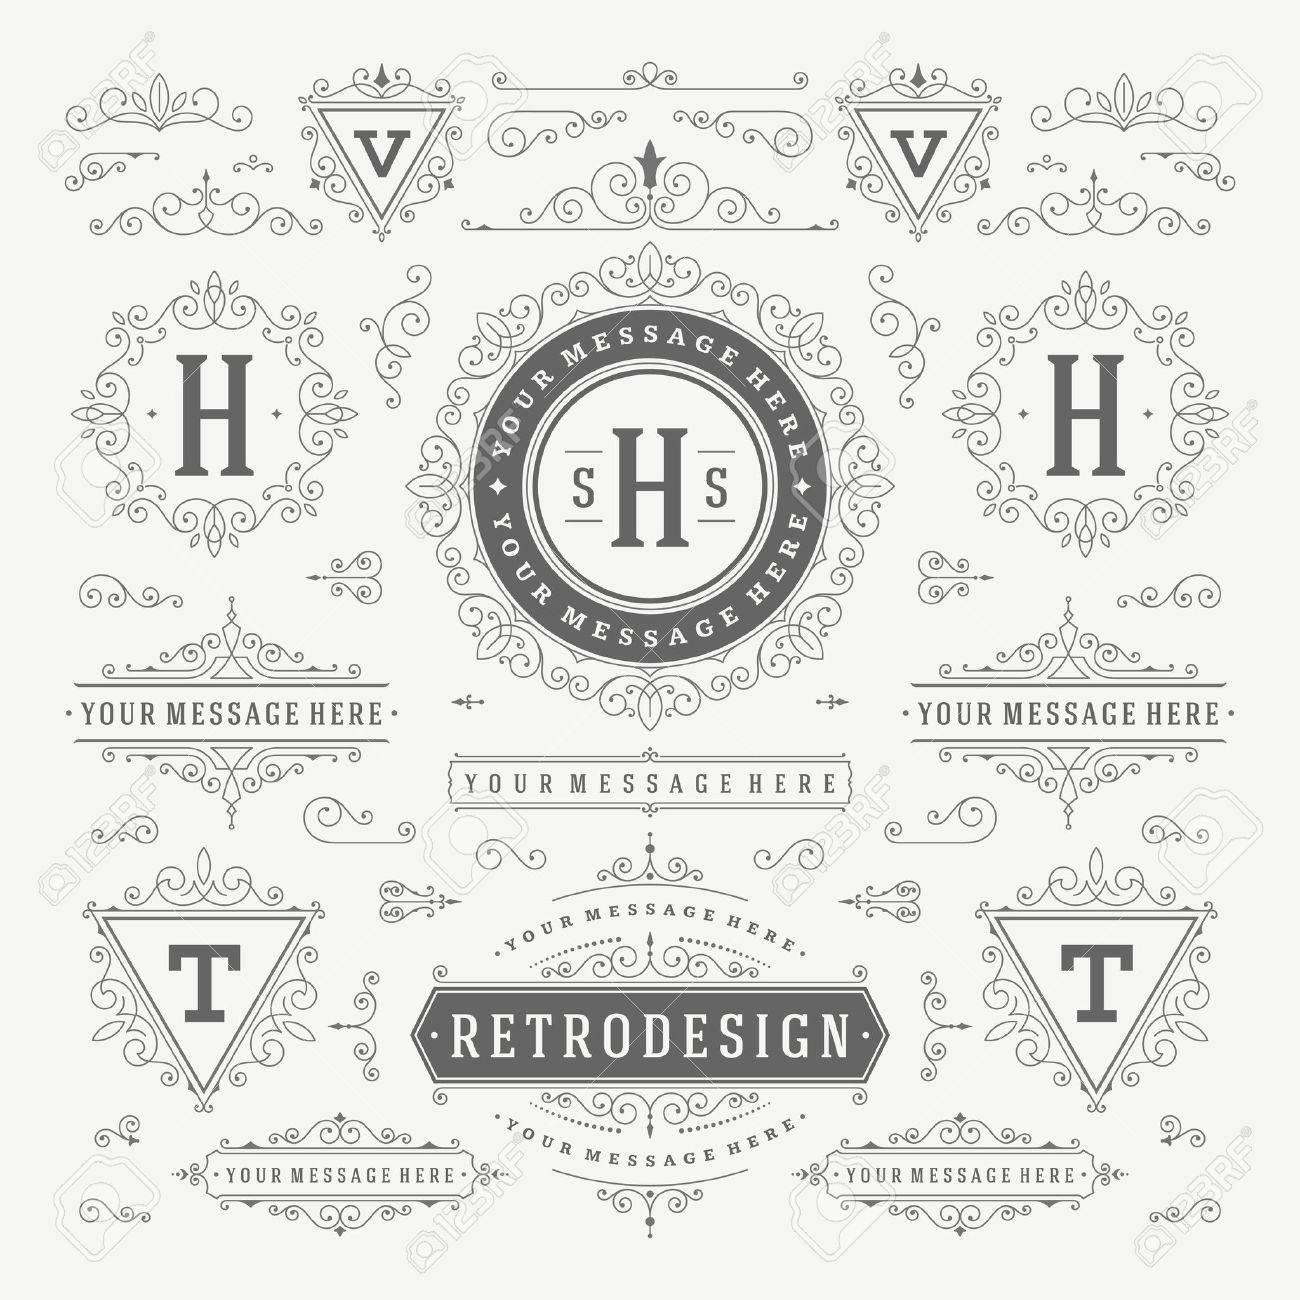 Vintage Vector Ornaments Decorations Design Elements. Flourishes calligraphic combinations retro for Invitations, Restaurant Menu, Royalty, Typography, Quotes, Greeting cards, Certificate and other. - 48325039